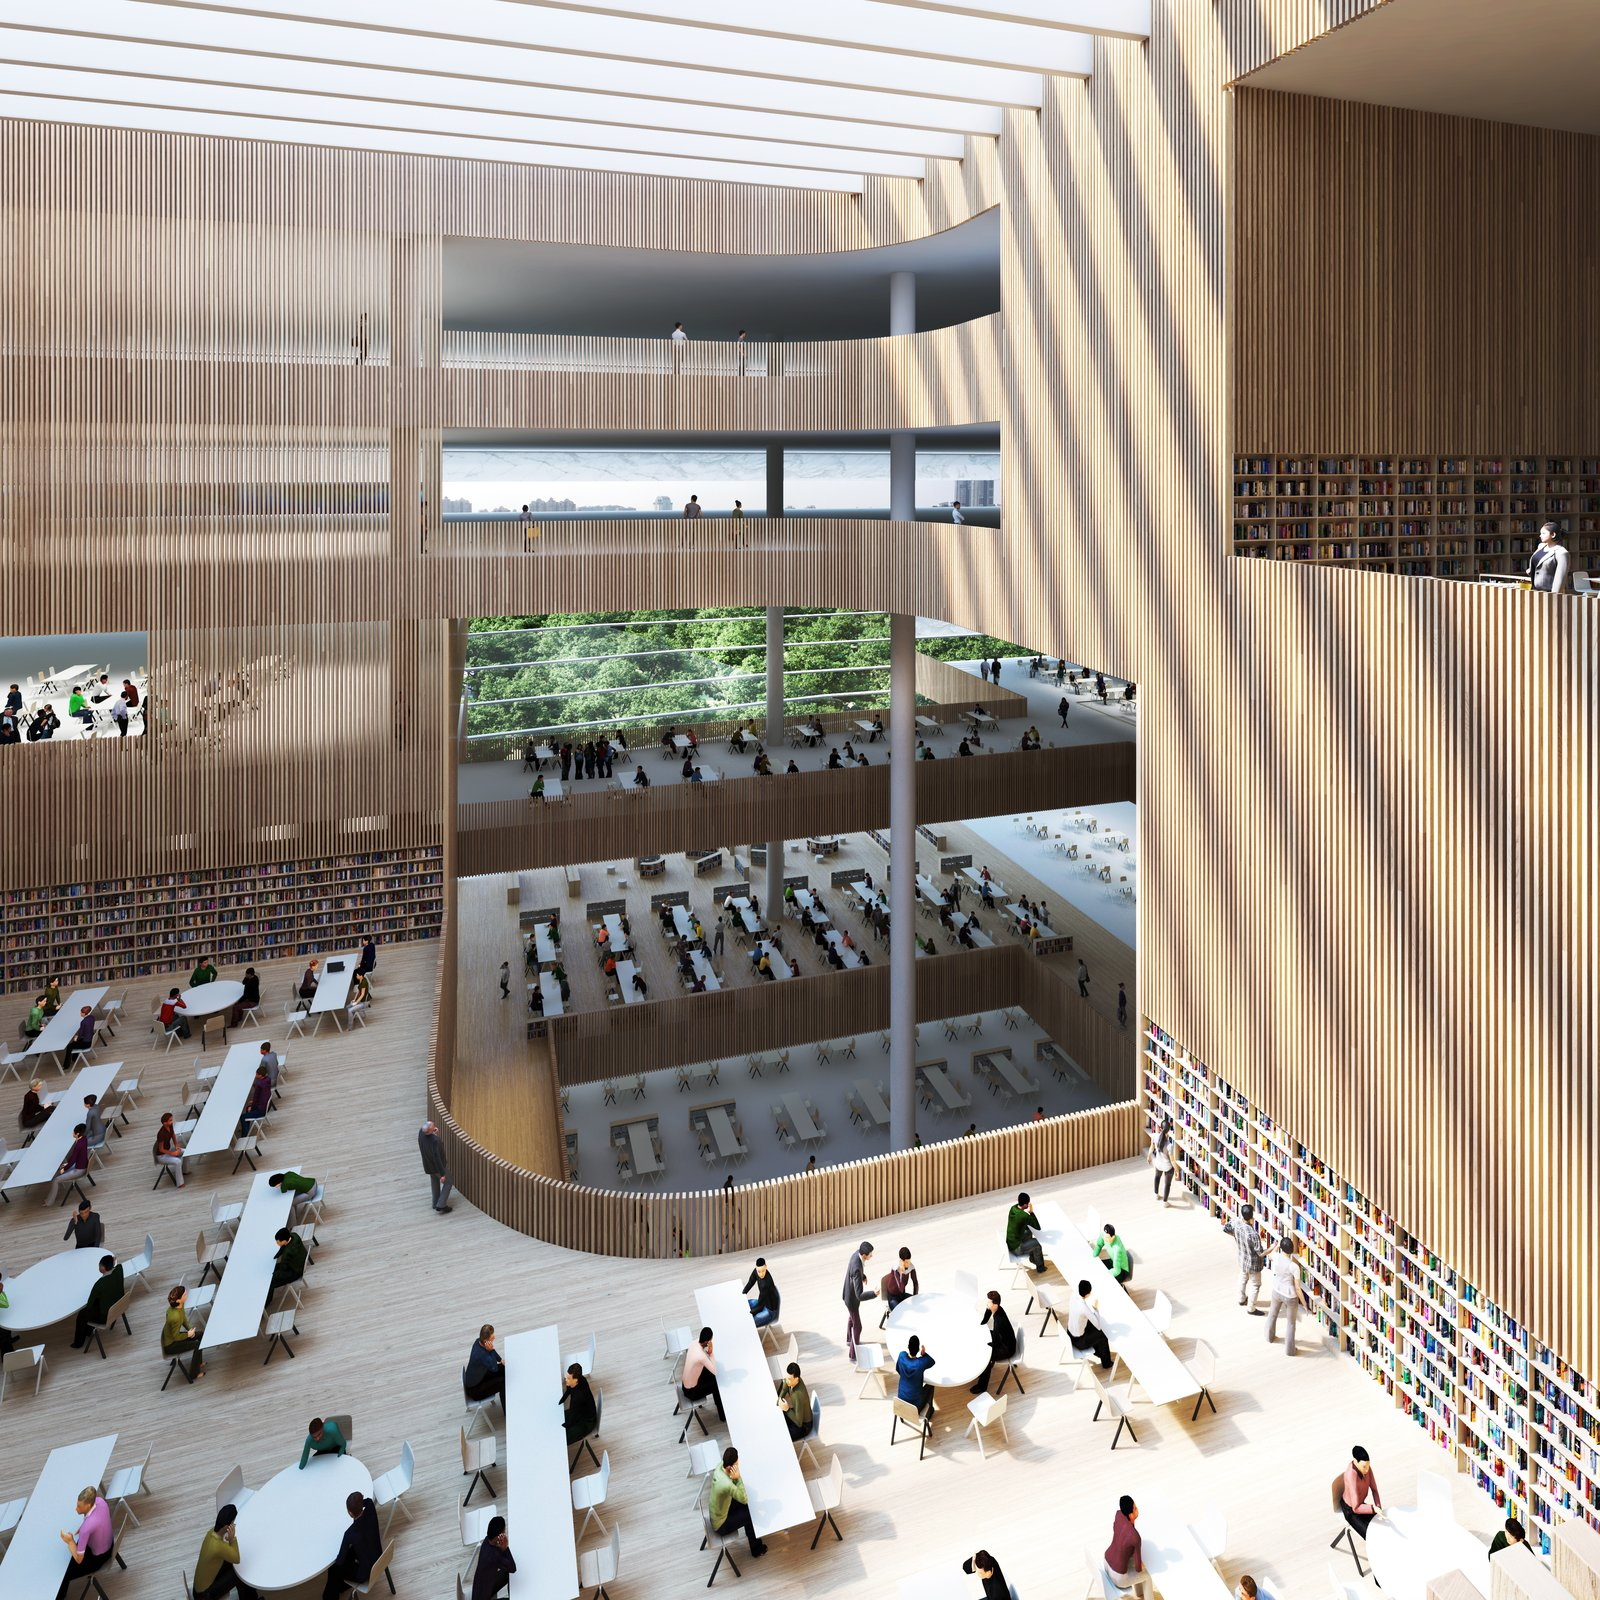 The Shanghai Library will also house the Shanghai Institute of Scientific and Technological Information.  Photo 6 of 8 in Schmidt Hammer Lassen Architects' Winning Design For the Shanghai Library